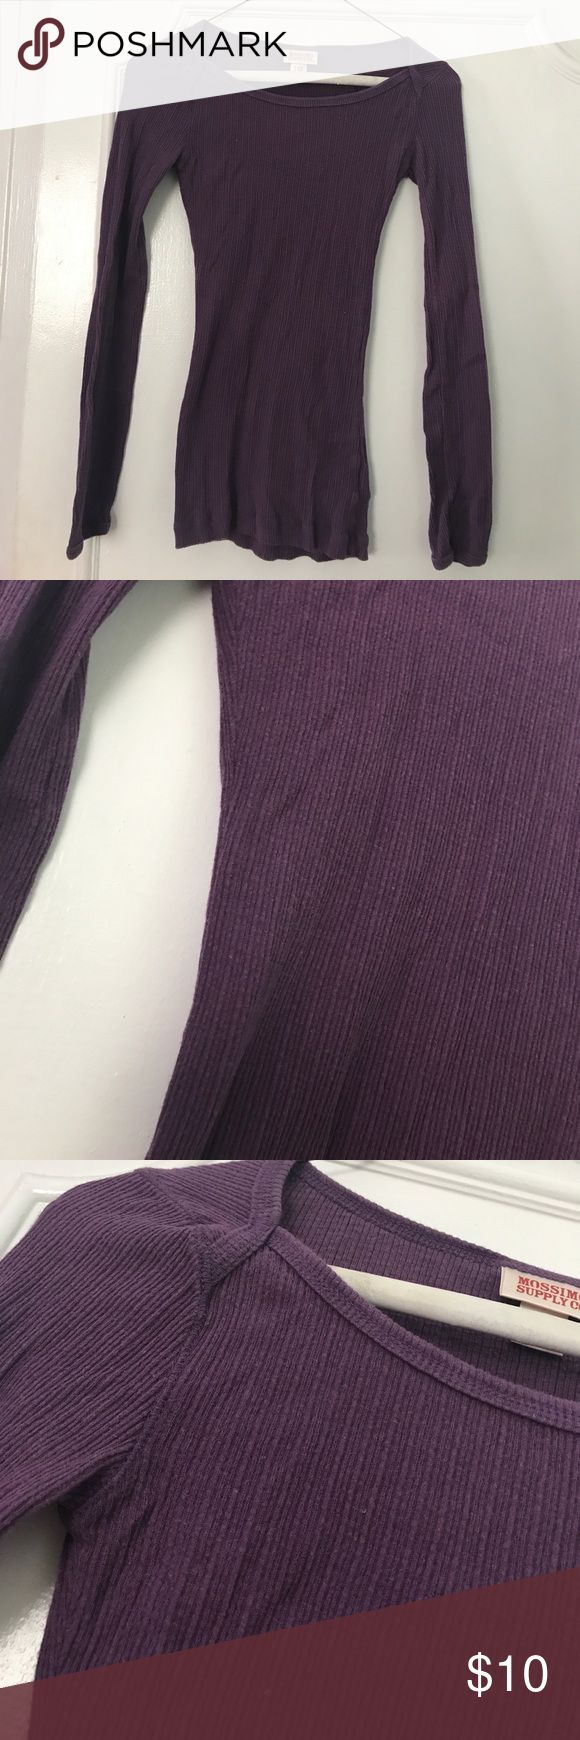 BASIC PURPLE LONG SLEEVE Basic Purple Long Sleeve Top - Lightly Used in Great Condition - very comfy Tops Tees - Long Sleeve